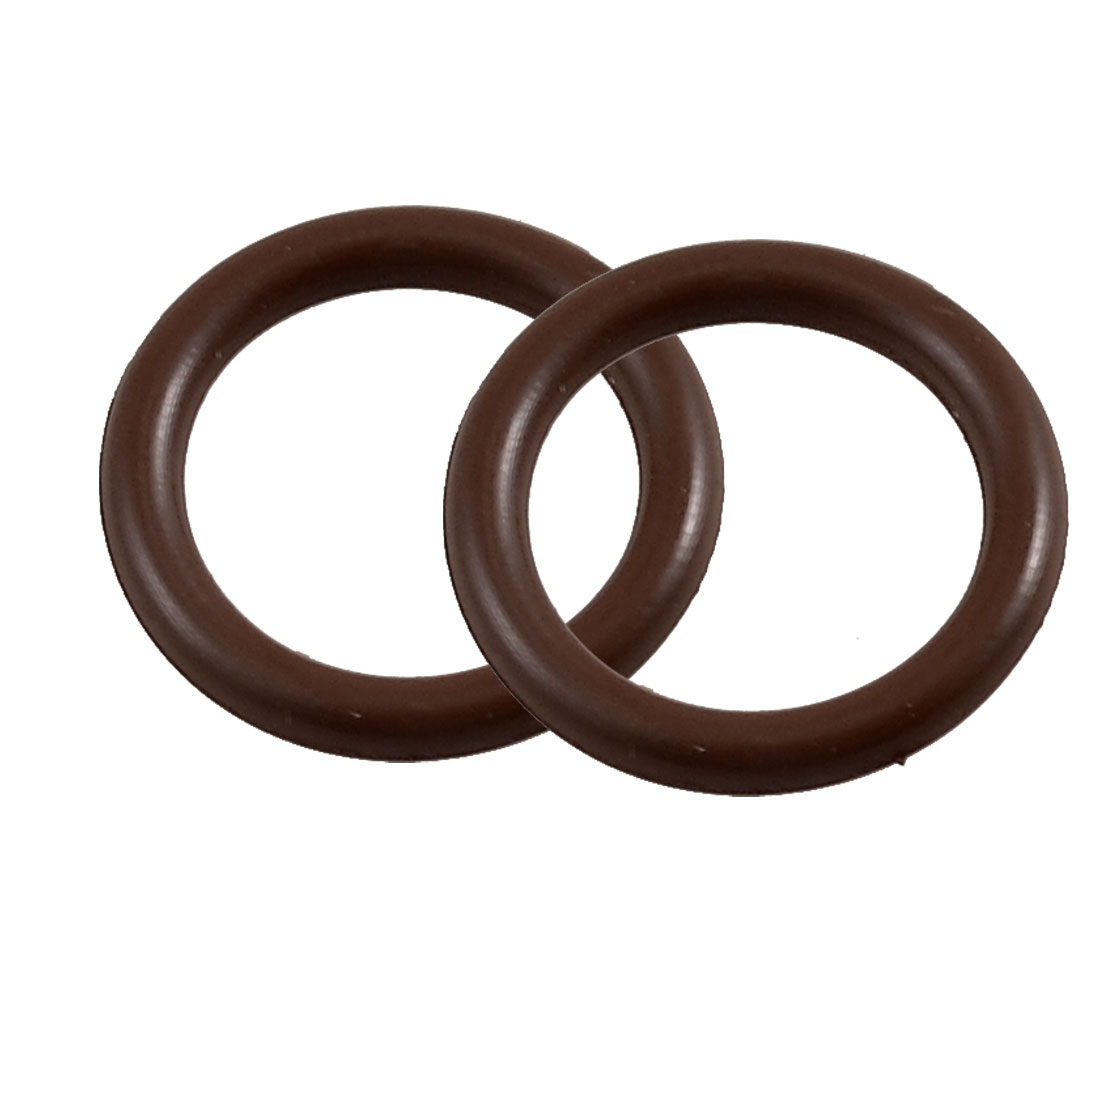 22mm x 16mm x 3mm Fluorine Rubber Sealing O Ring Gasket Washer 2 Pcs